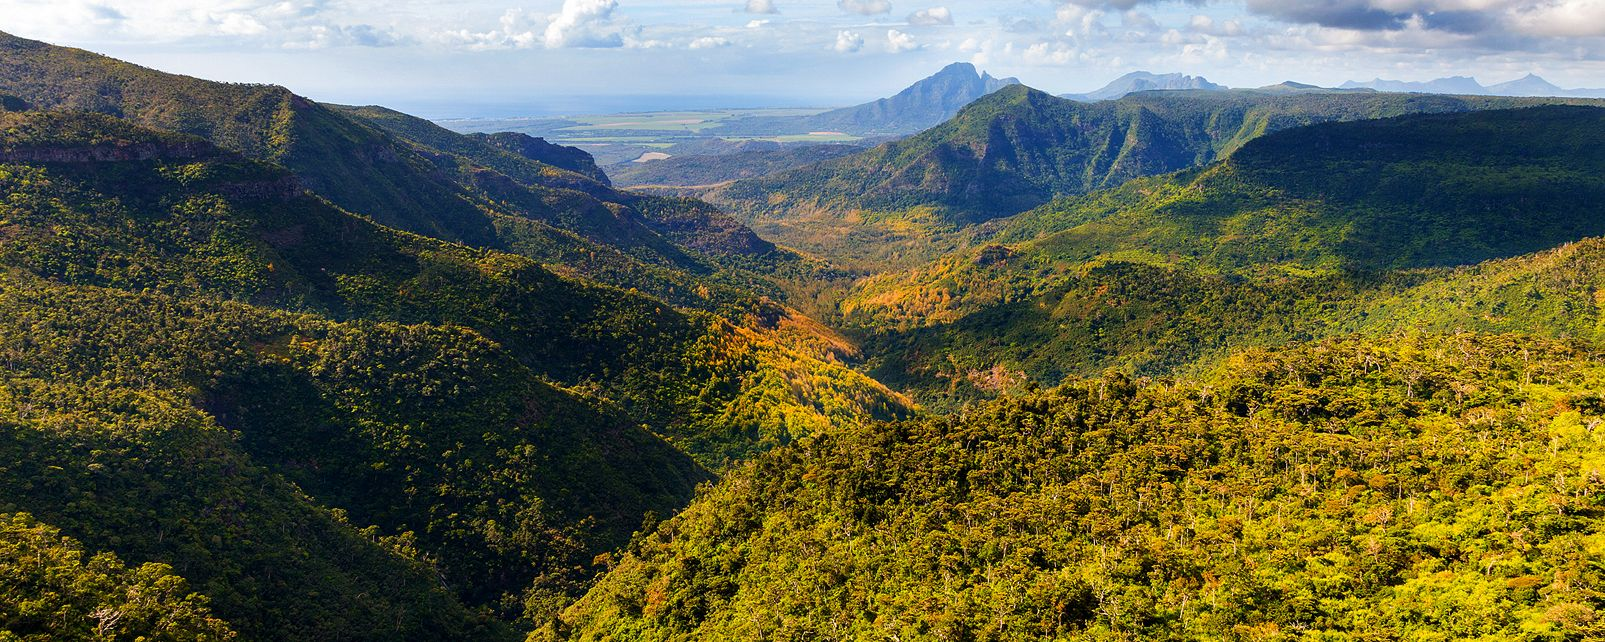 Black River Gorges, National Park, Mauritius